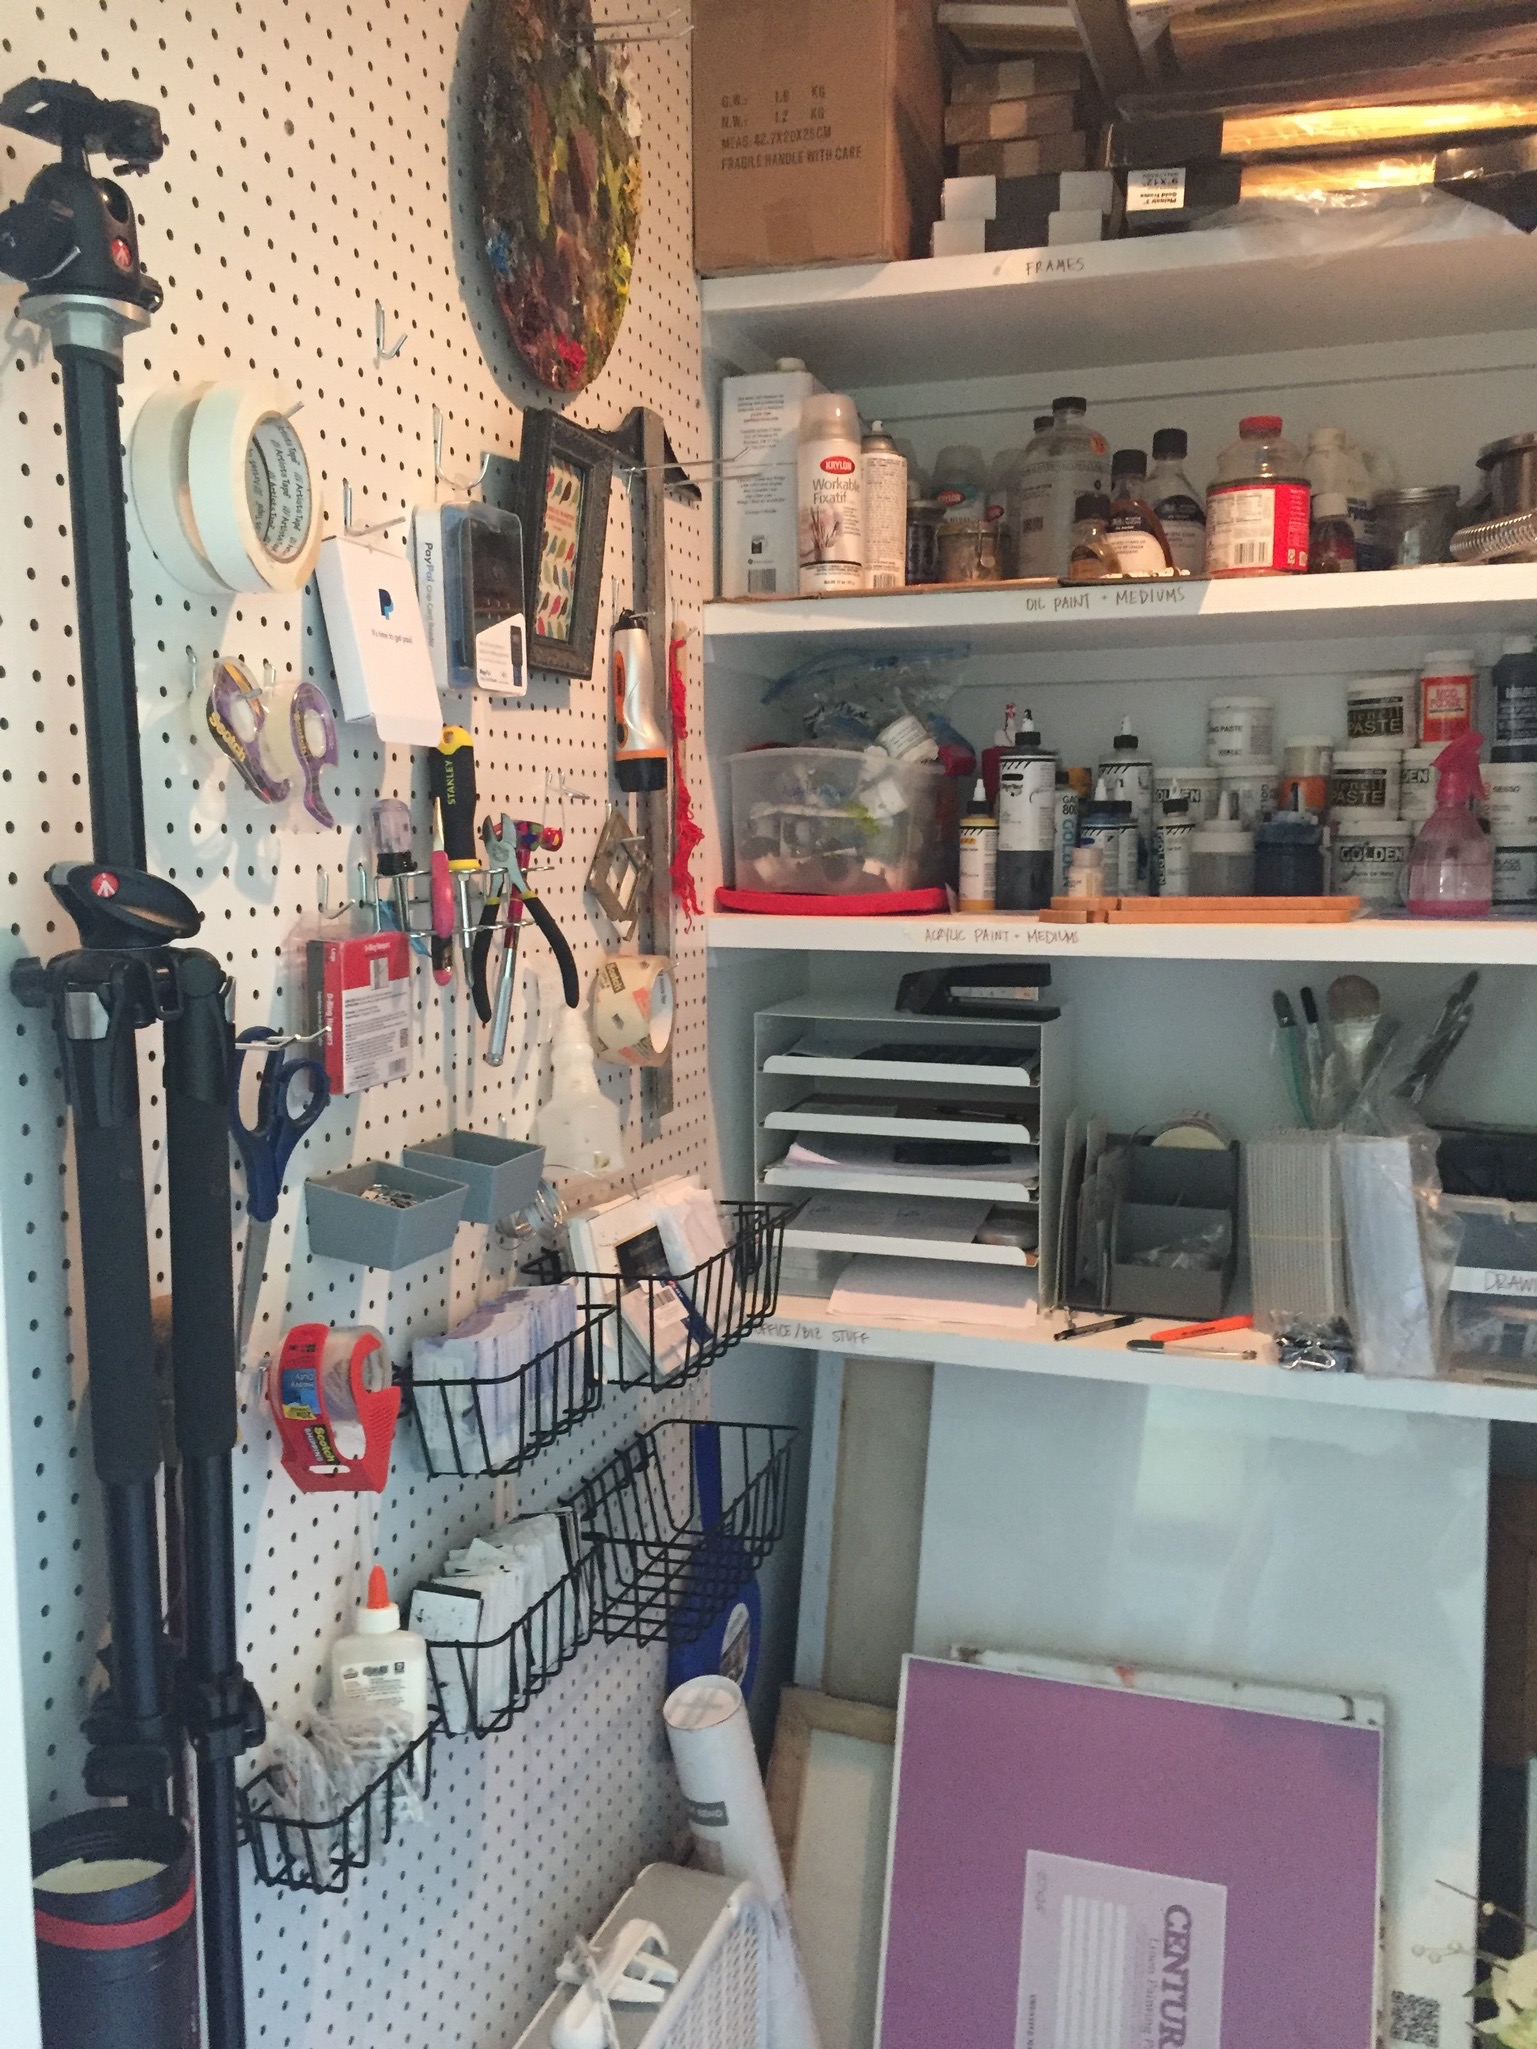 The pegboard was a great way to use the short wall that couldn't fit any shelving.